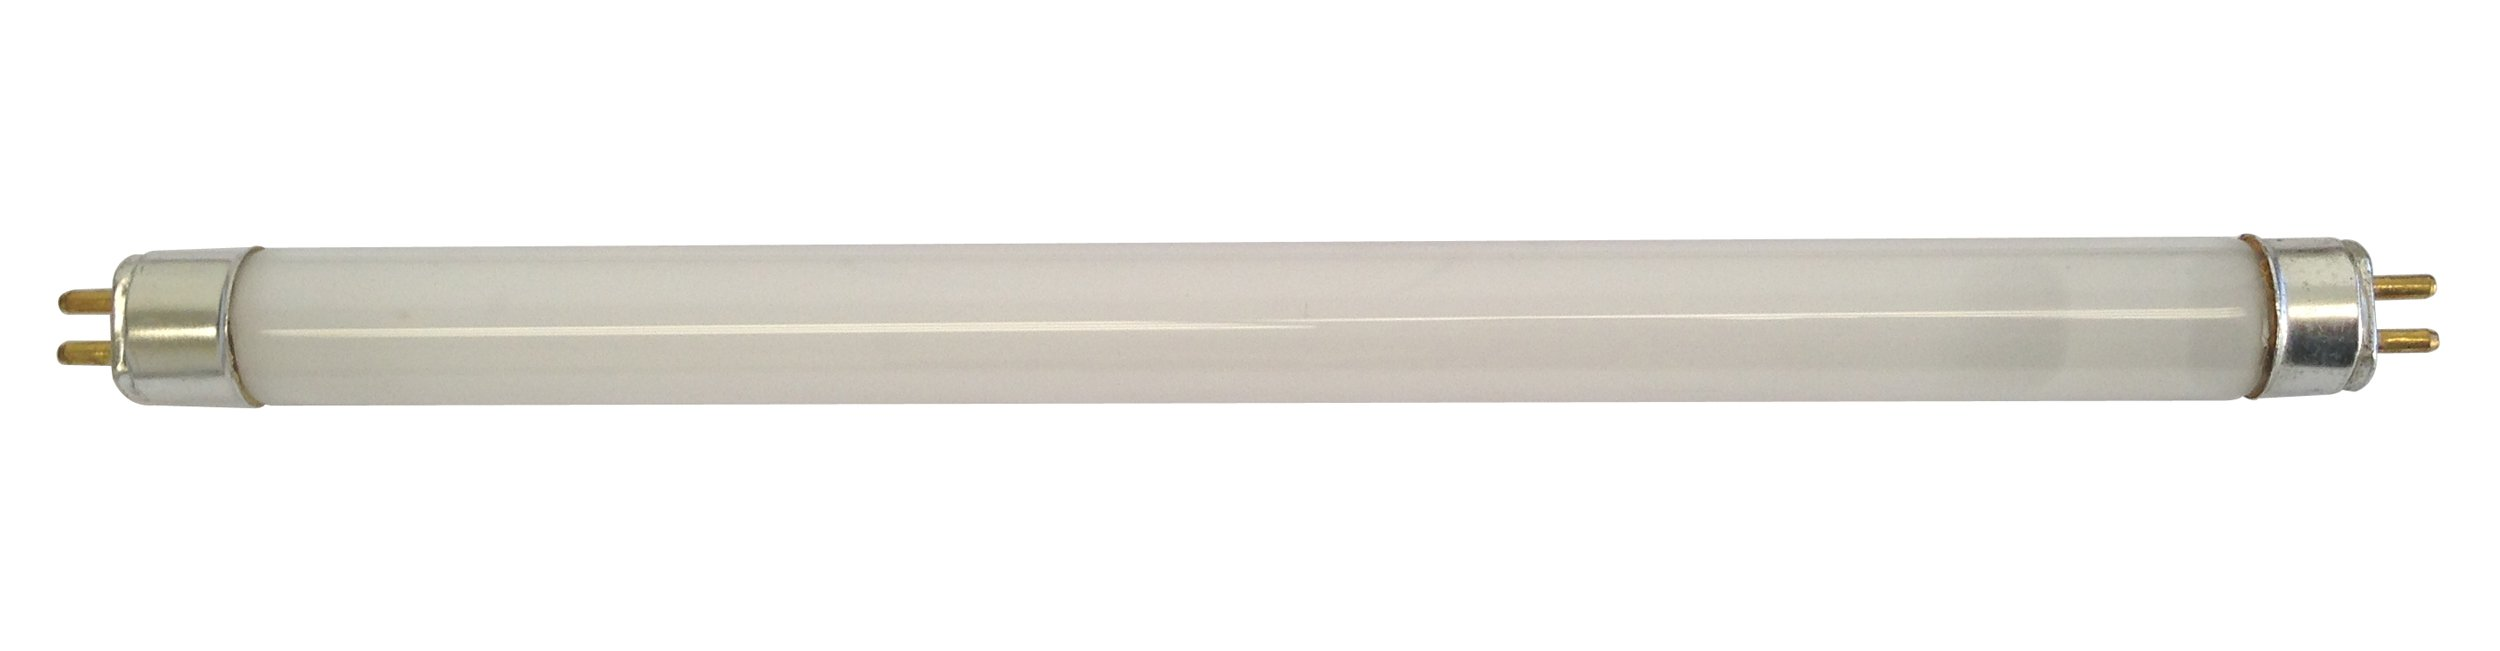 SPT 2102-BULB Replacement Part UV Bulb for AC-2102 Air Cleaner